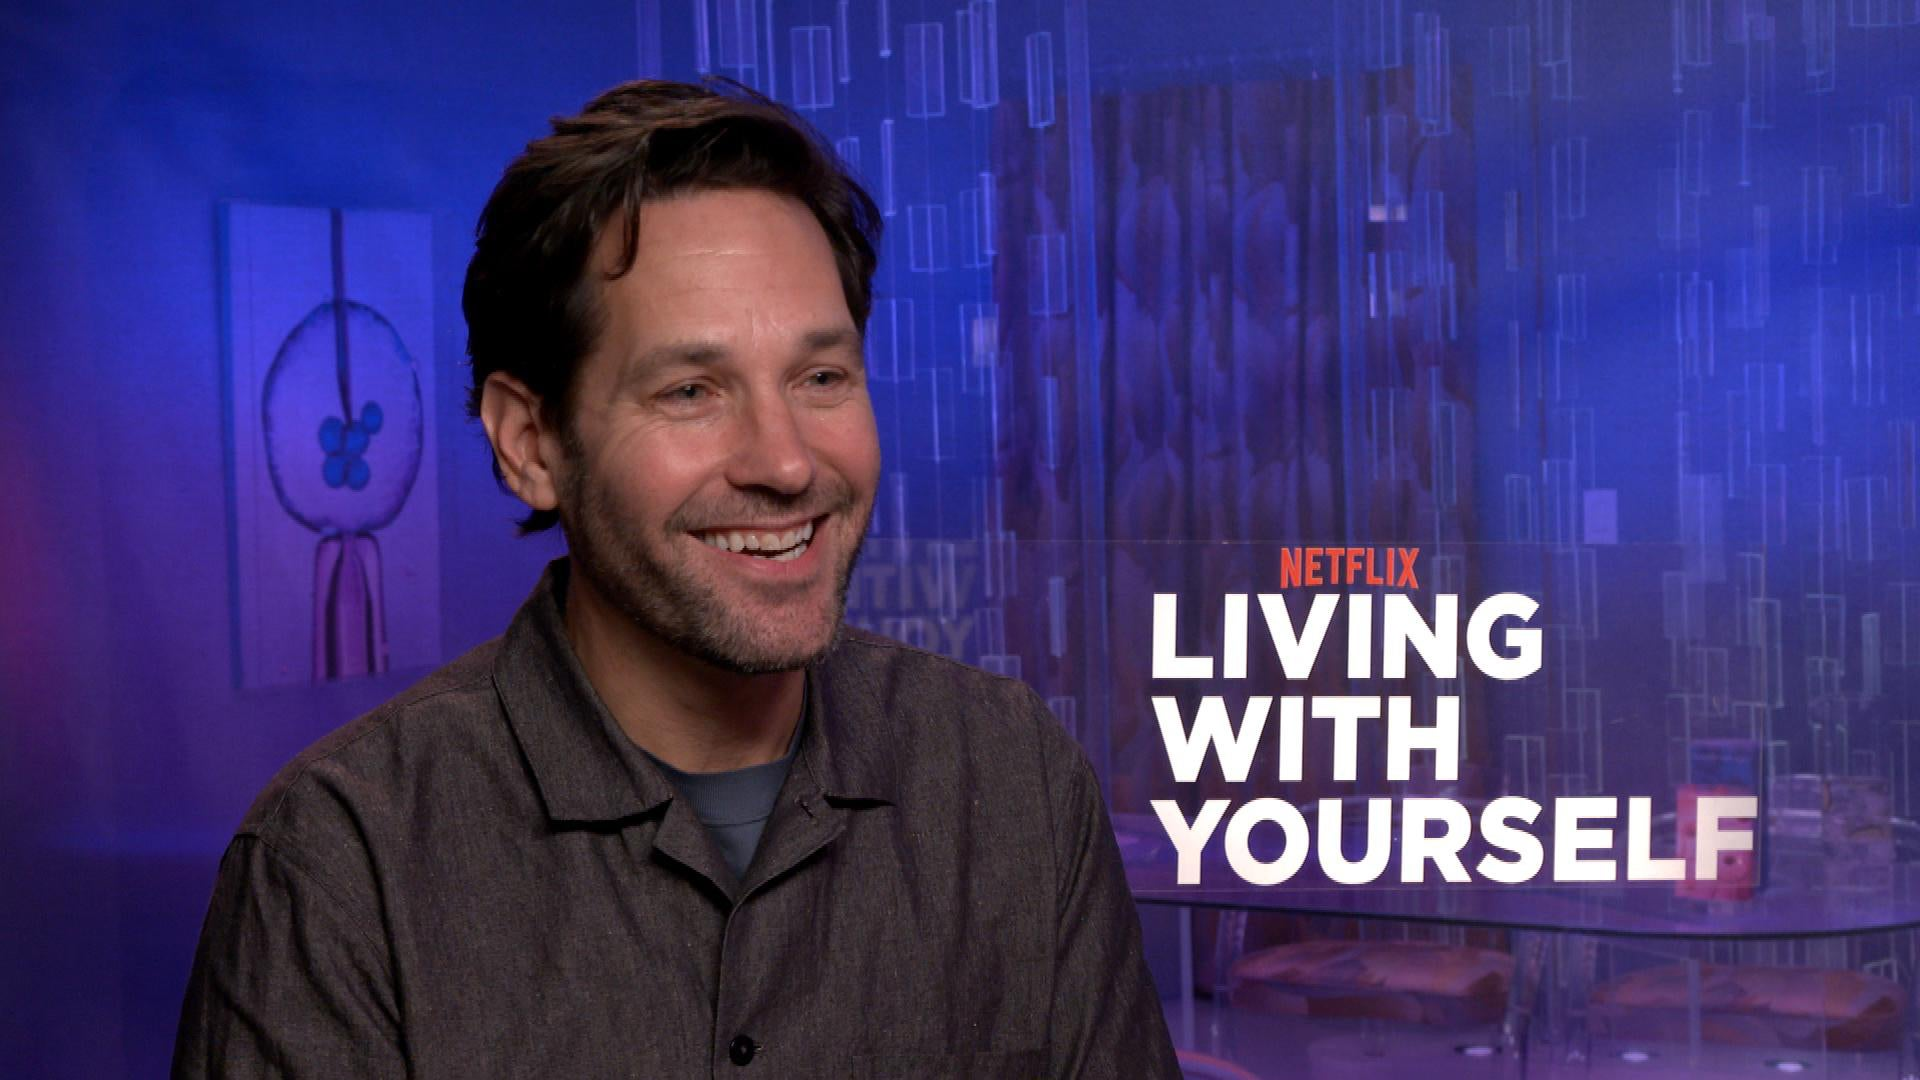 Paul Rudd on His Decades-Spanning Acting Career: 'It's a Fun, Crazy, Strange Way to Make a Living' (Exclusive)